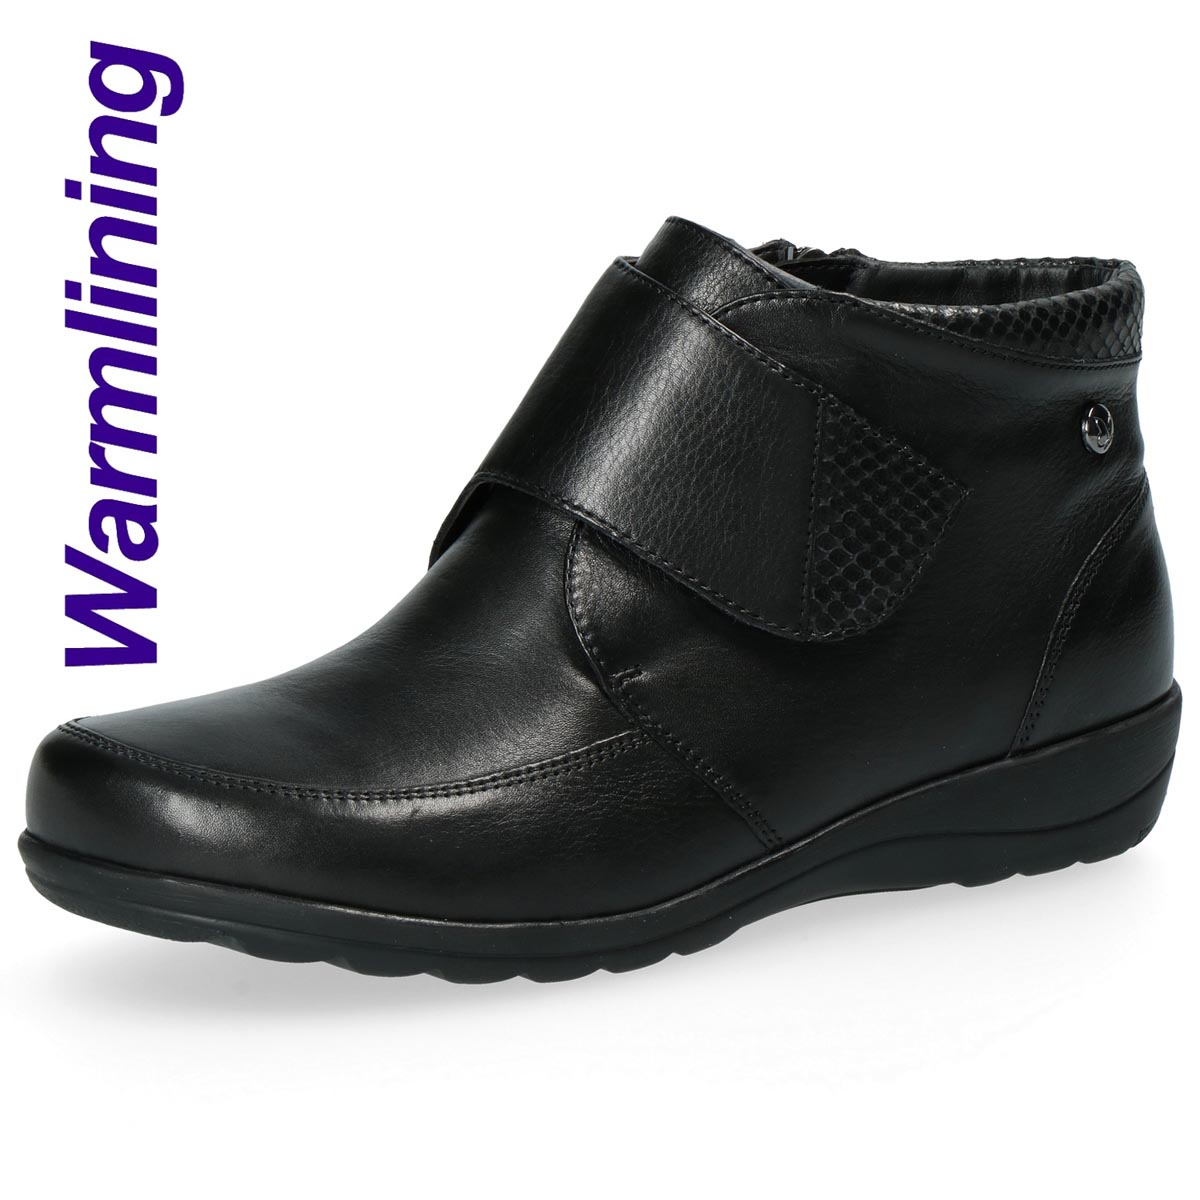 Caprice - Myrtle Black Leather Comfort Ankle Boot